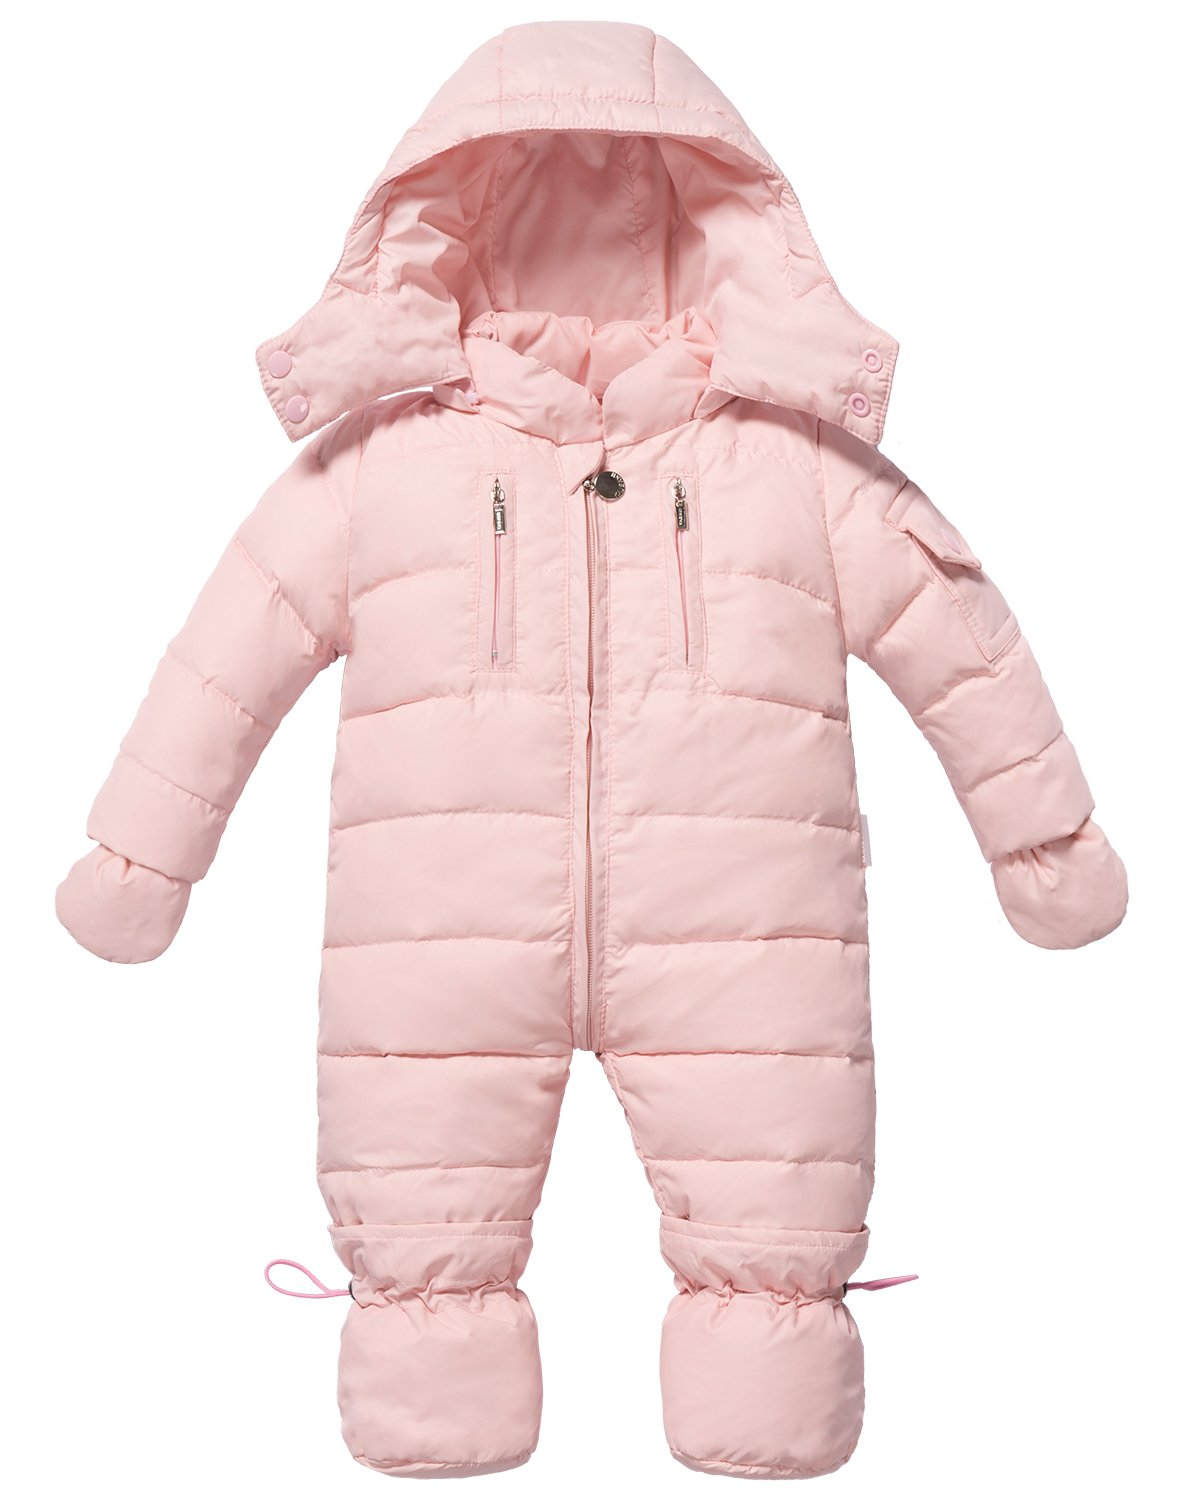 ZOEREA Infant Newborn Baby Hoodie Down Jacket Jumpsuit Pram Snuggly Snow Suit (Label 110/ Age 6-12 Months, Pink) by ZOEREA